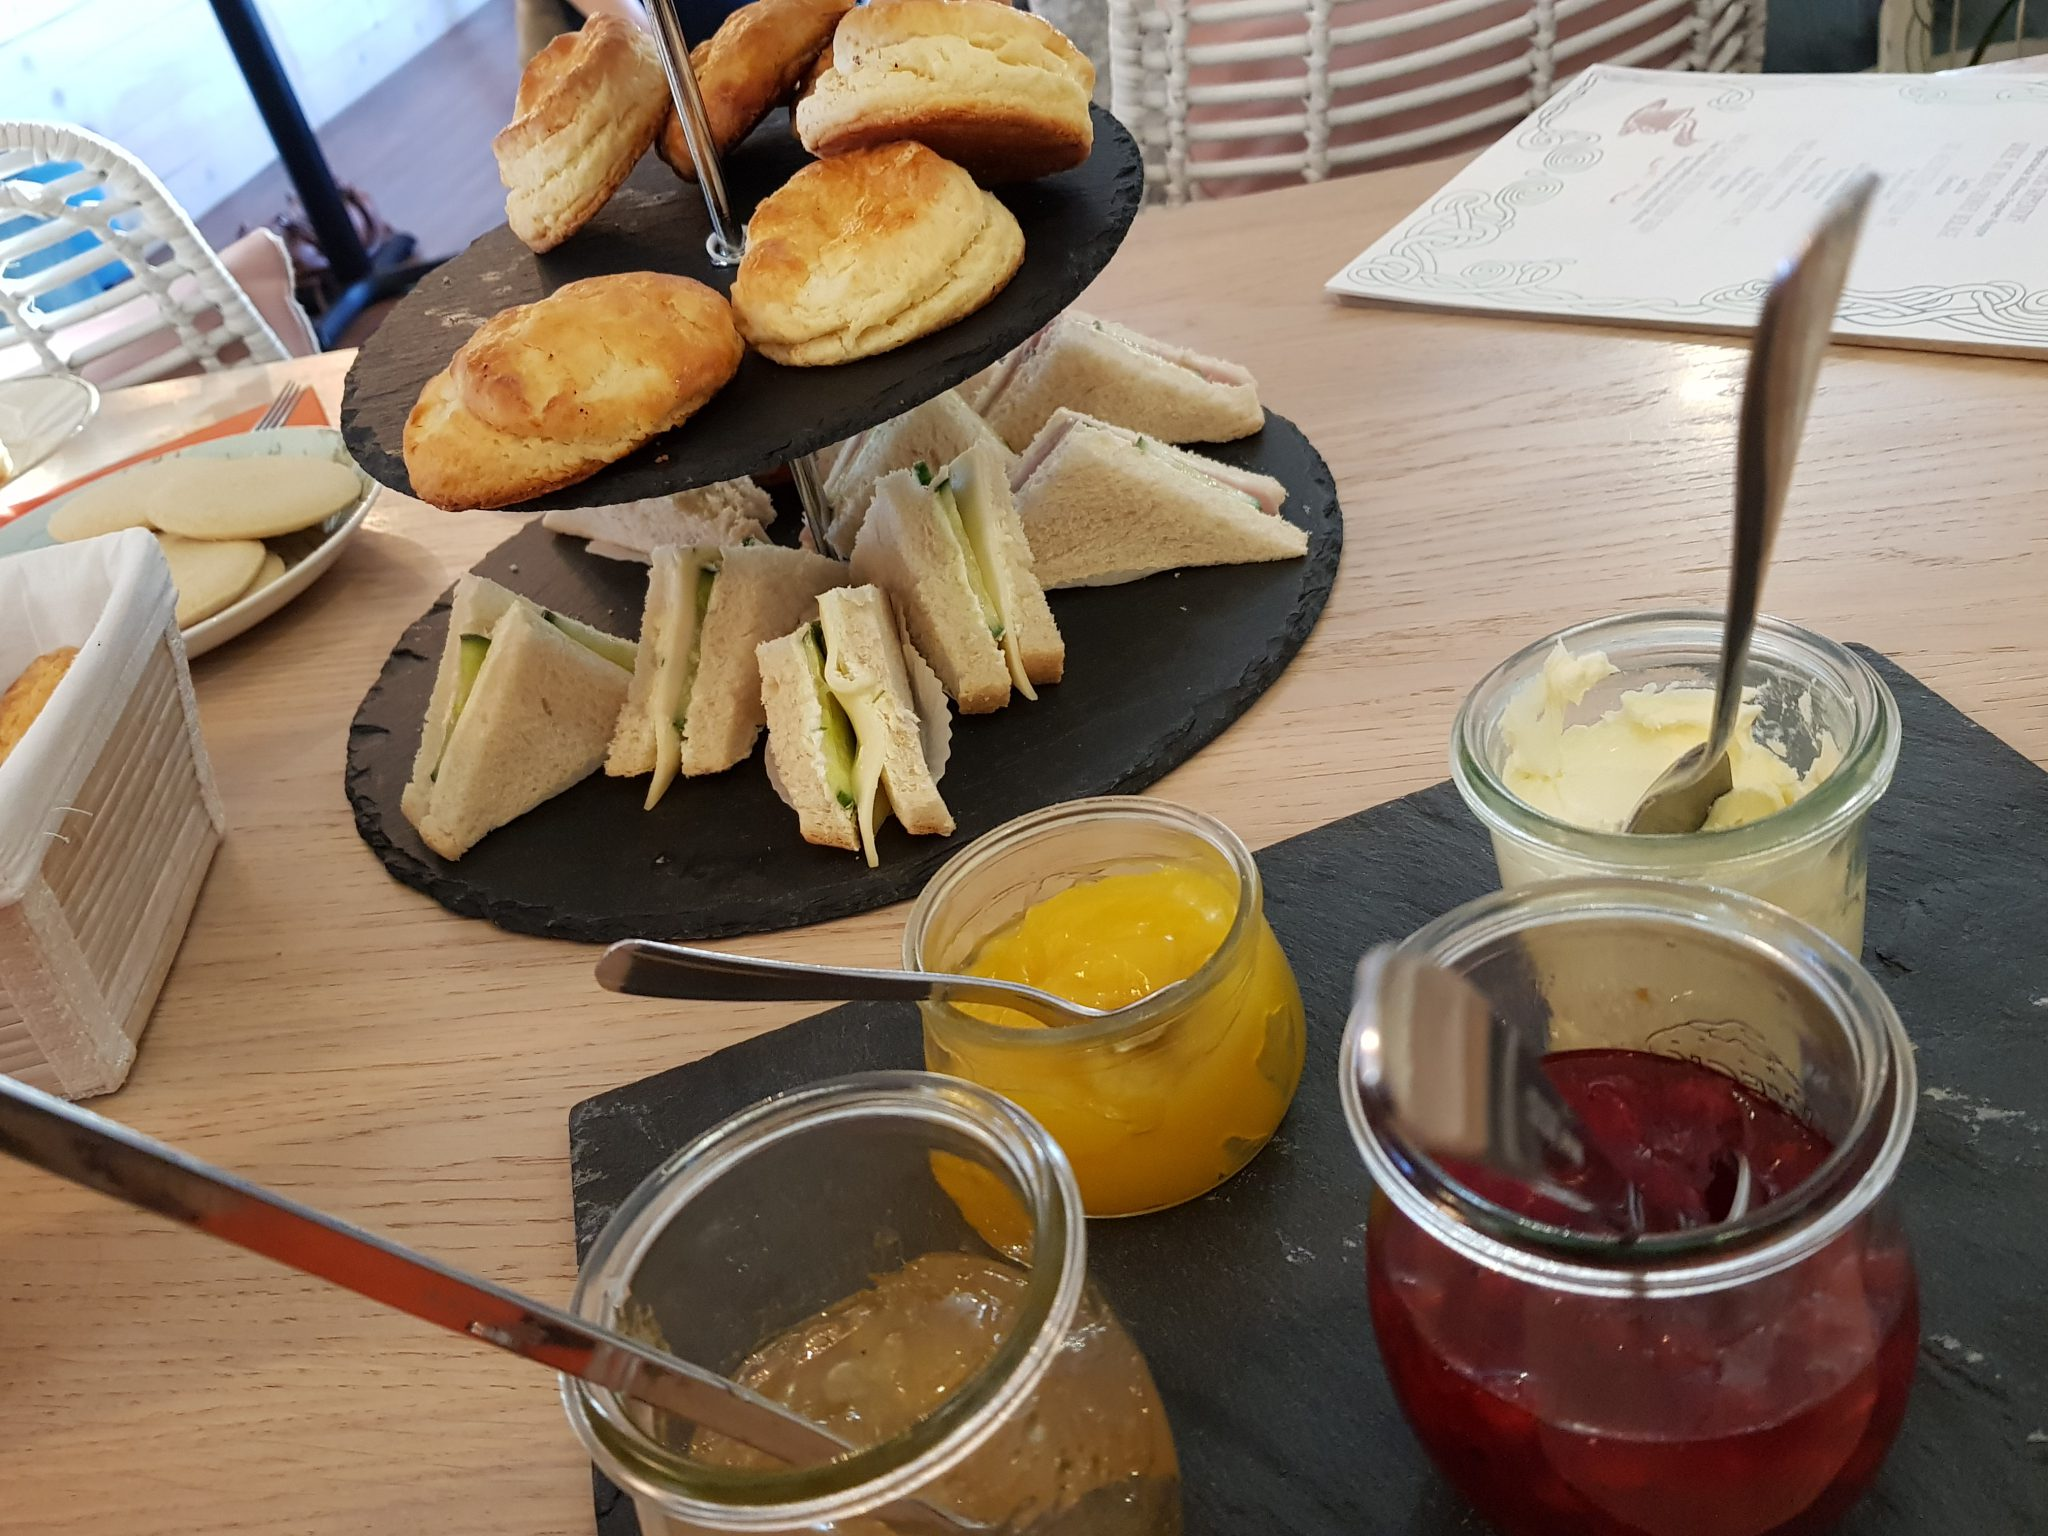 Blogger-Event | Blackwood - Briefe für mich | Britta Sabbag | Tea Time | Scones | Clotted Cream | Lemon Curd